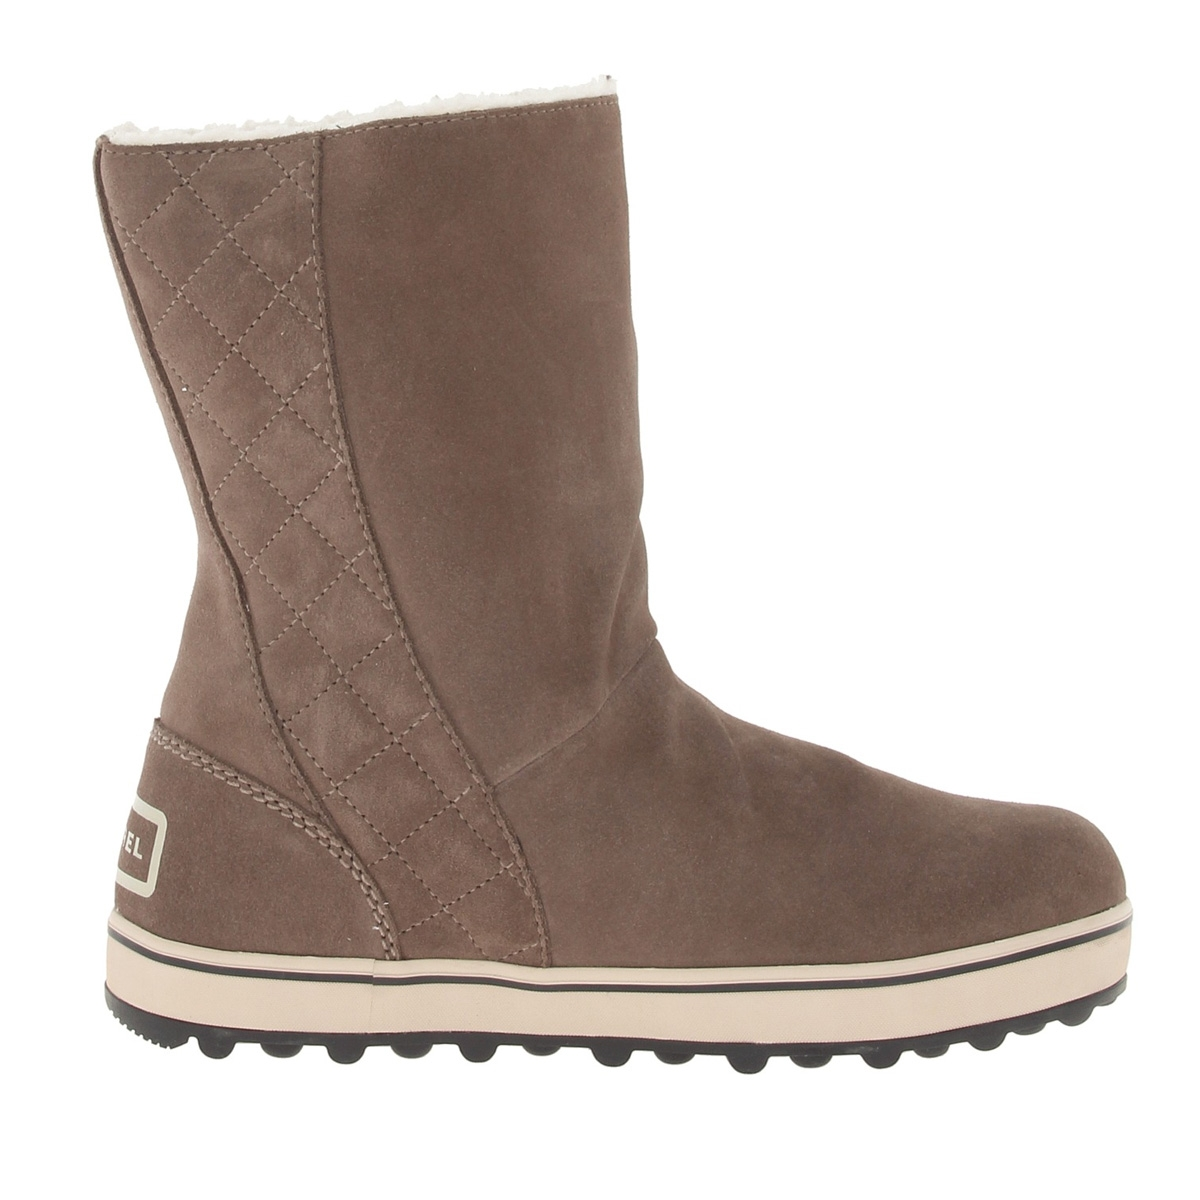 Sorel Glacy Boots (Women's) Saddle Fossil